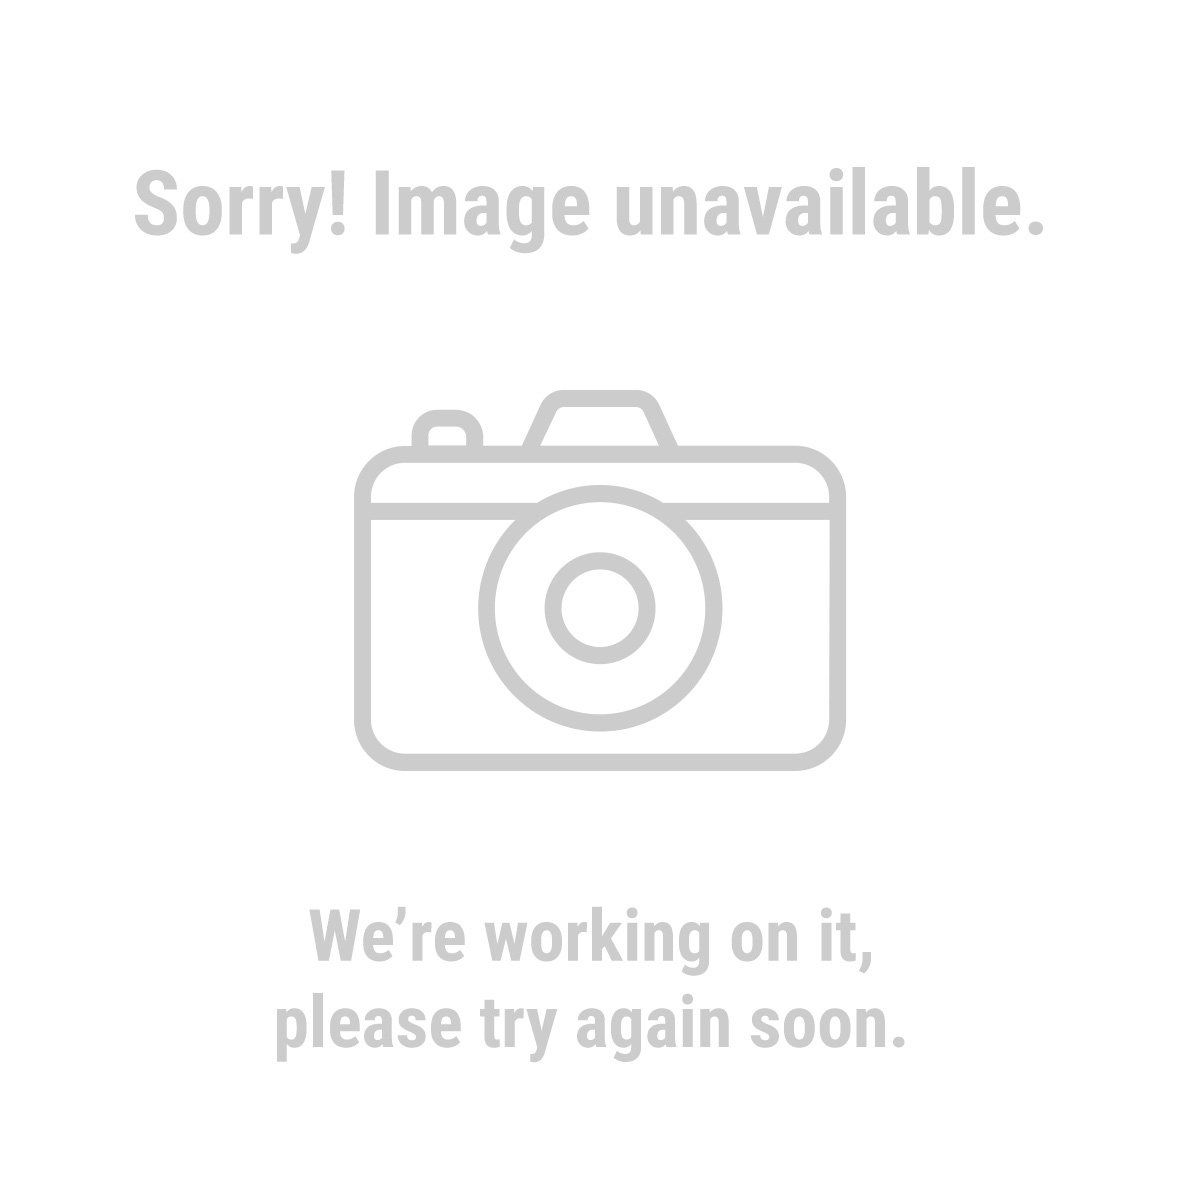 Table Saw Mobile Base Harbor Freight